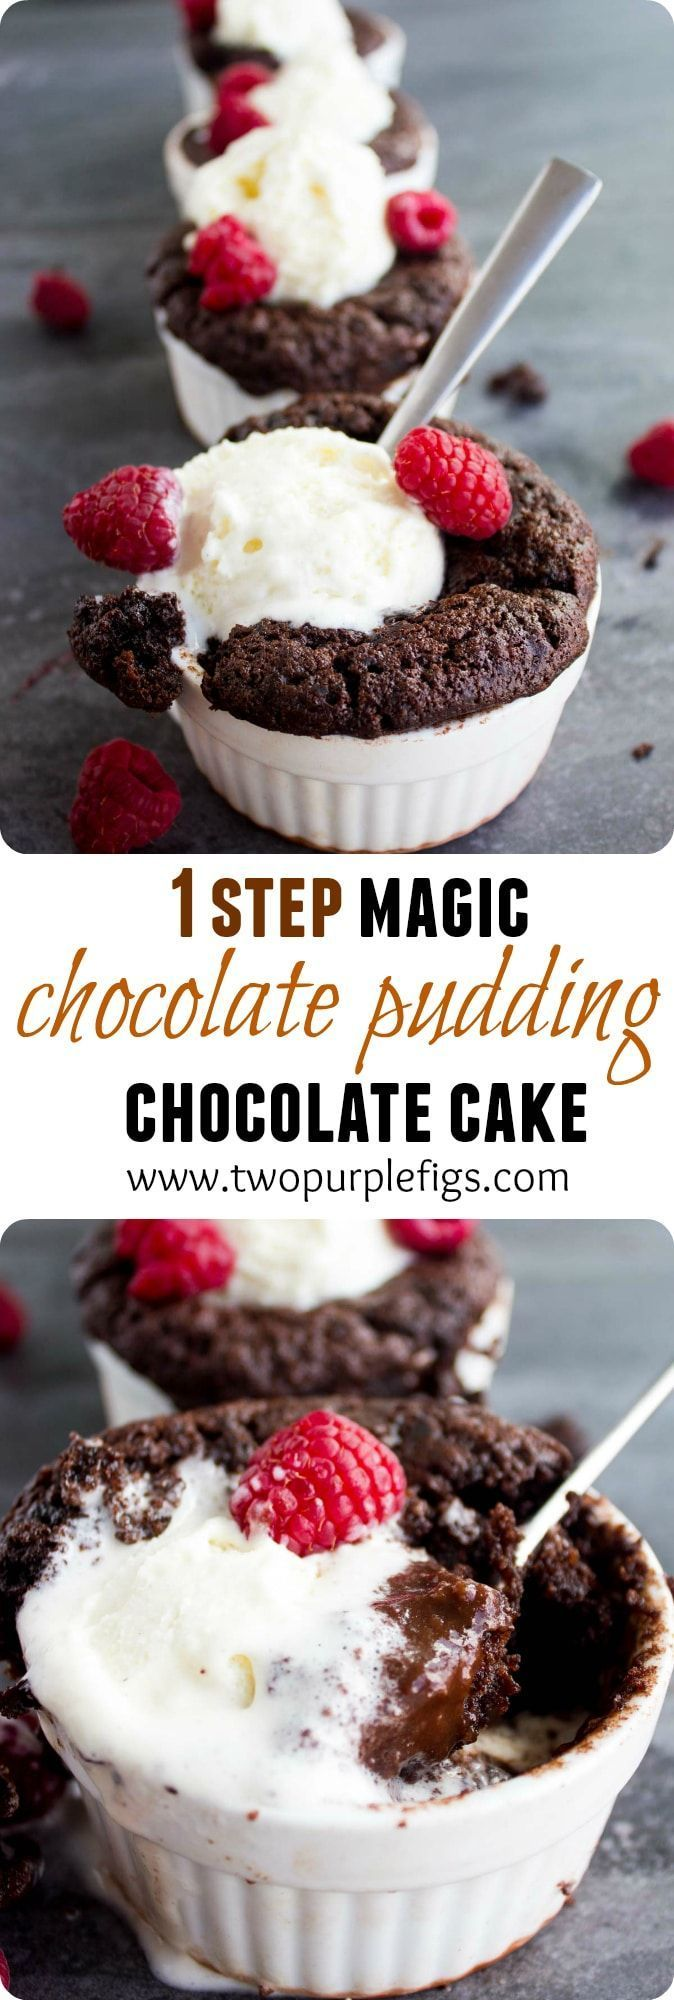 Chocolate Pudding Cakes | These individual Self-Saucing Mini Chocolate Pudding Cakes are the perfect quick and easy dessert for guests!  As they bake, the cake batter rises to the top creating layers of moist cake and saucy intense chocolate pudding! |  via @twopurplefigs